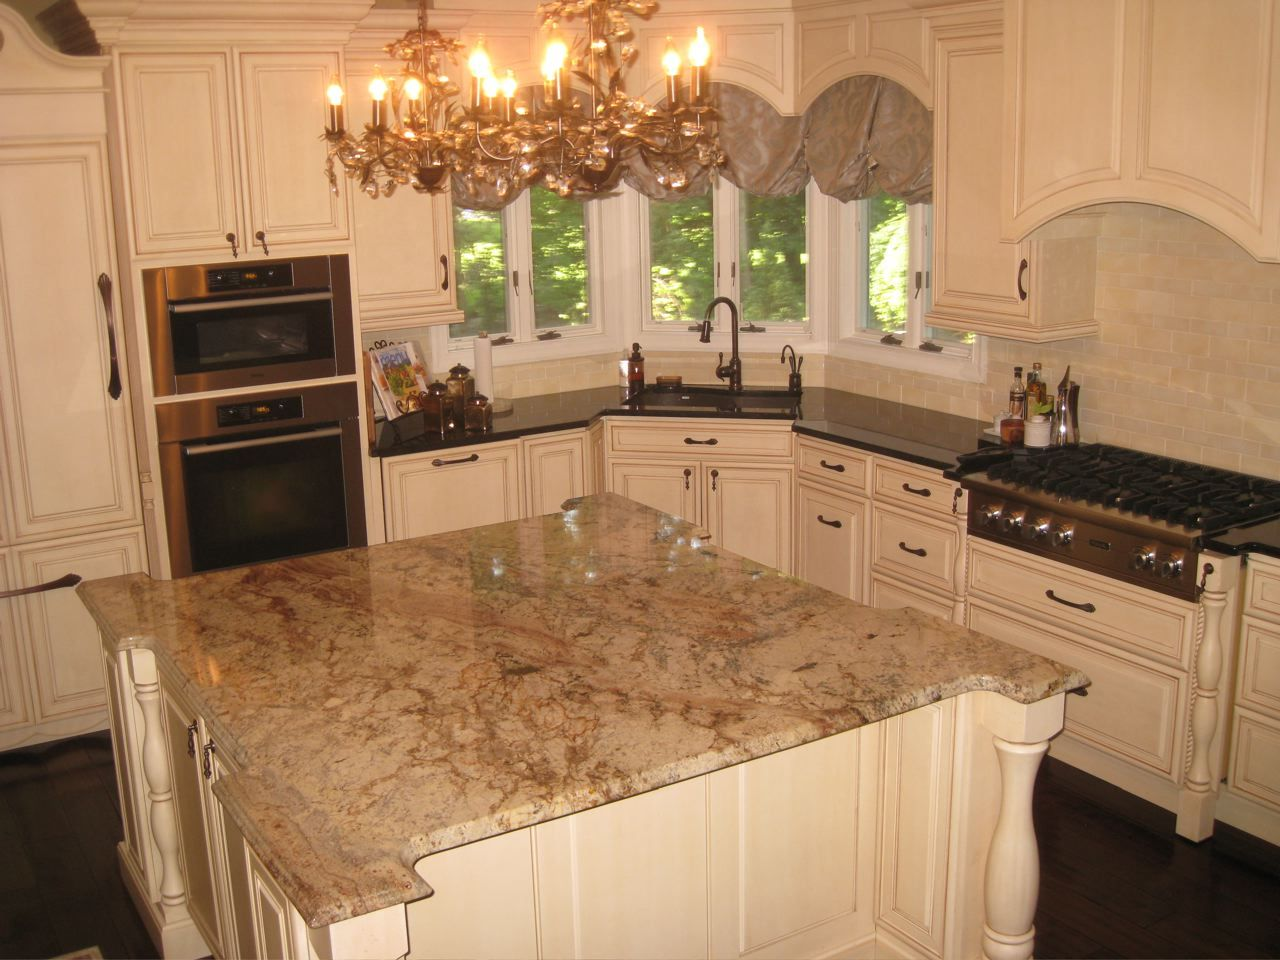 typhoon bordeaux granite kitchen | Typhoon Bordeaux Island ...